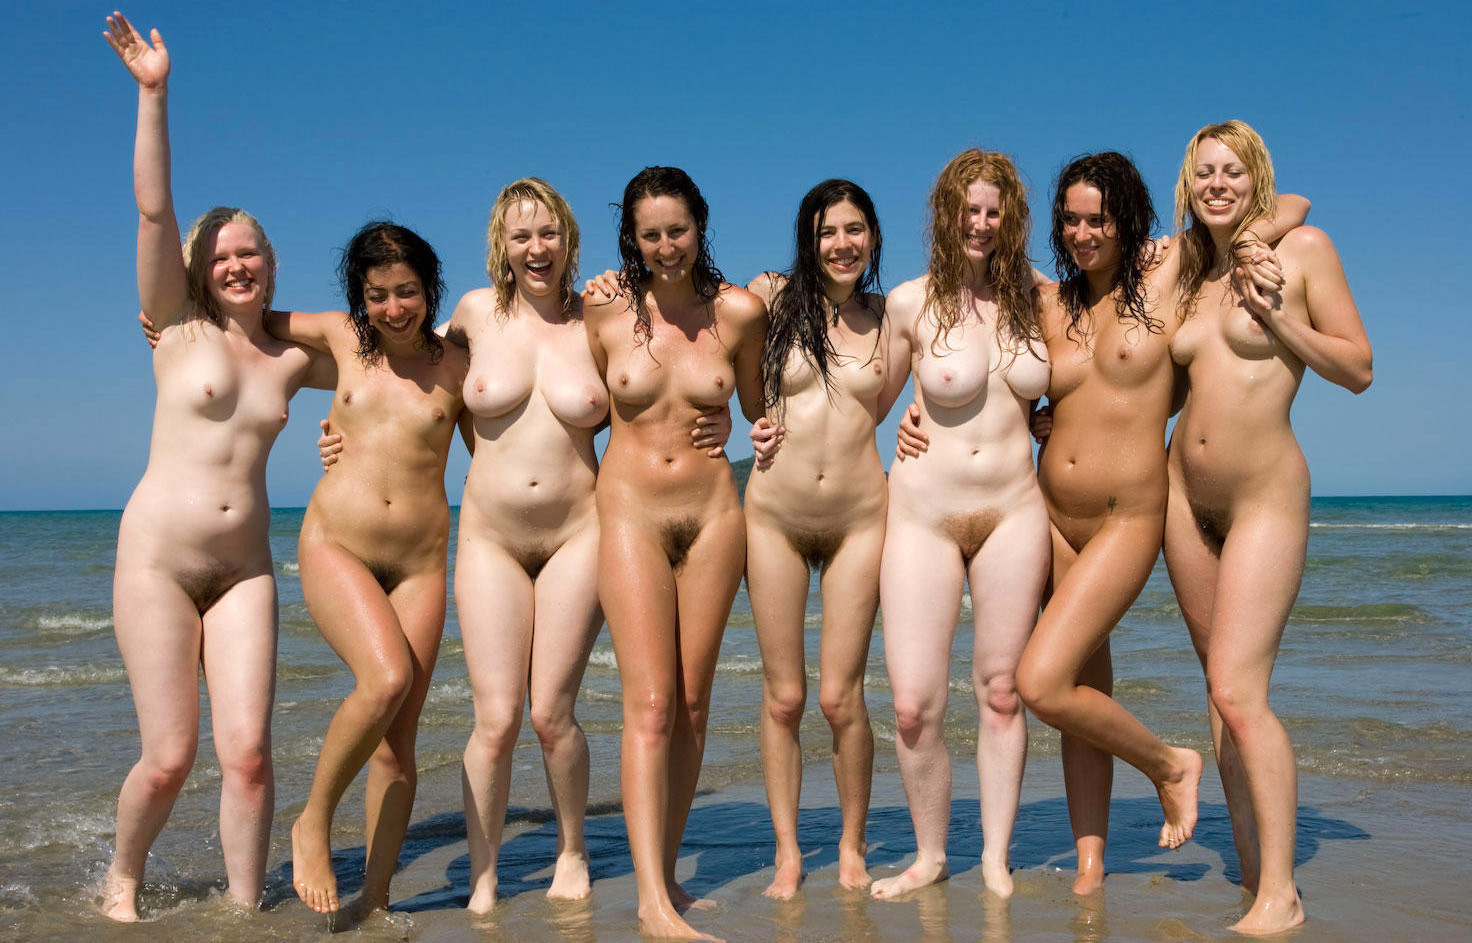 Naked girls in a group